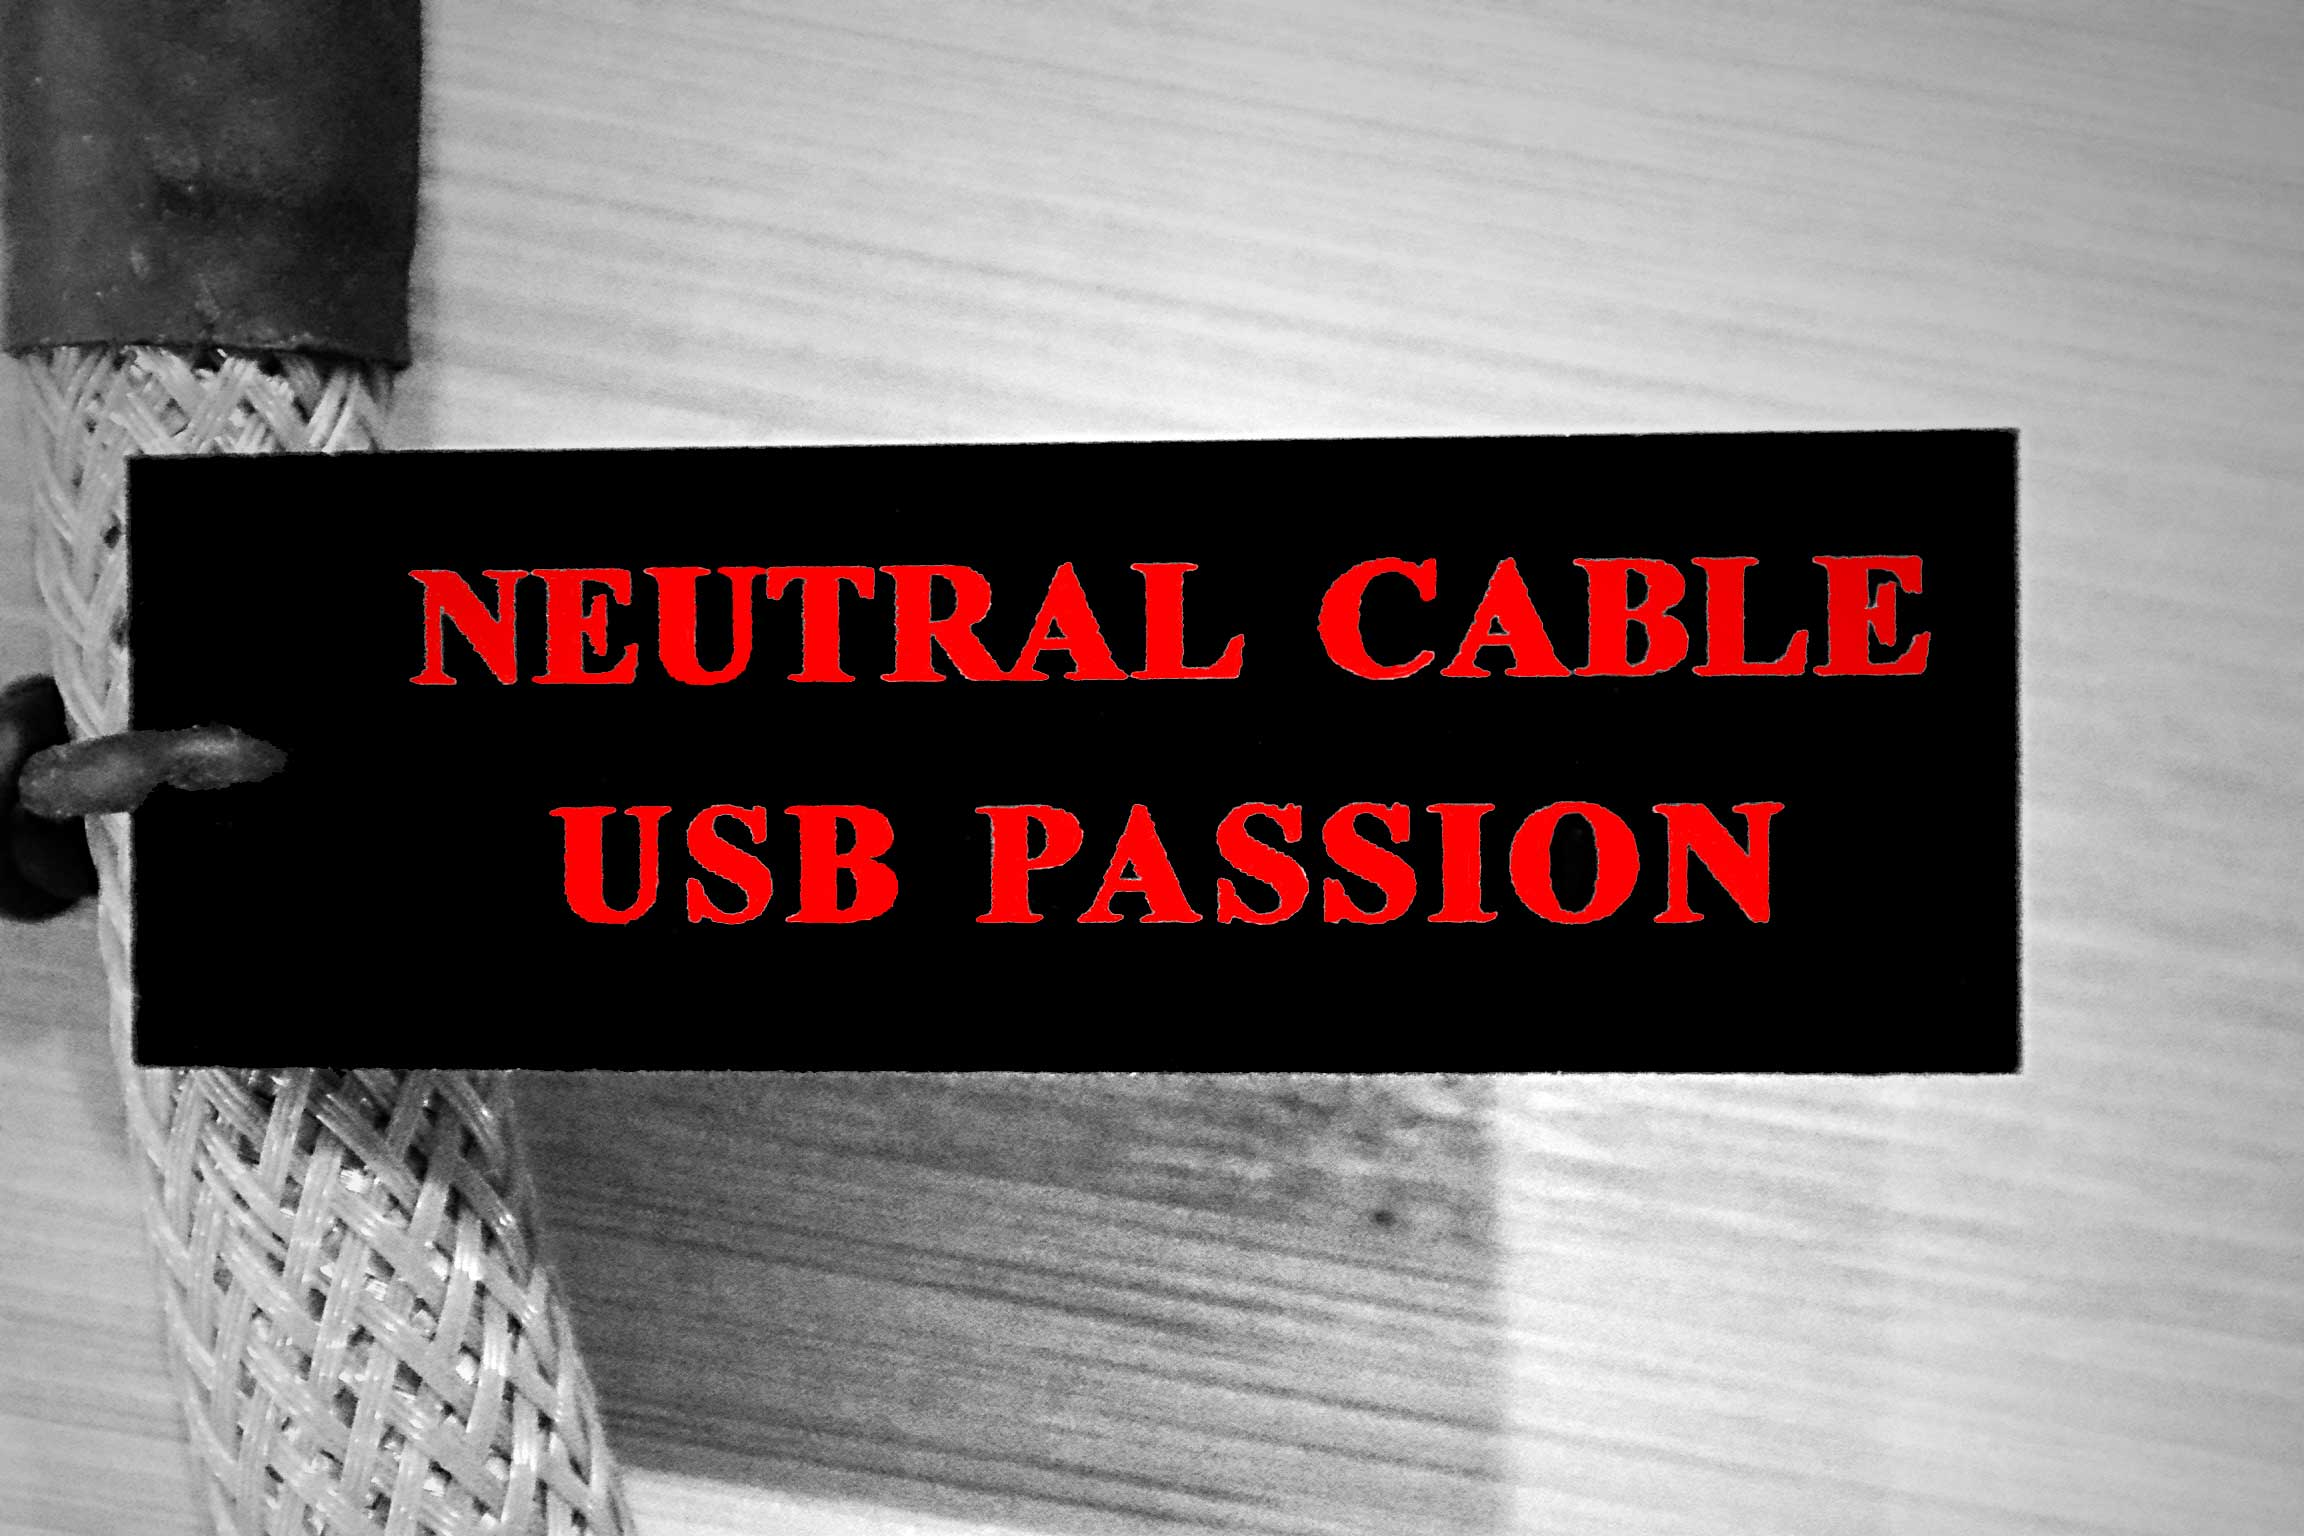 NEUTRAL CABLE USB PASSION